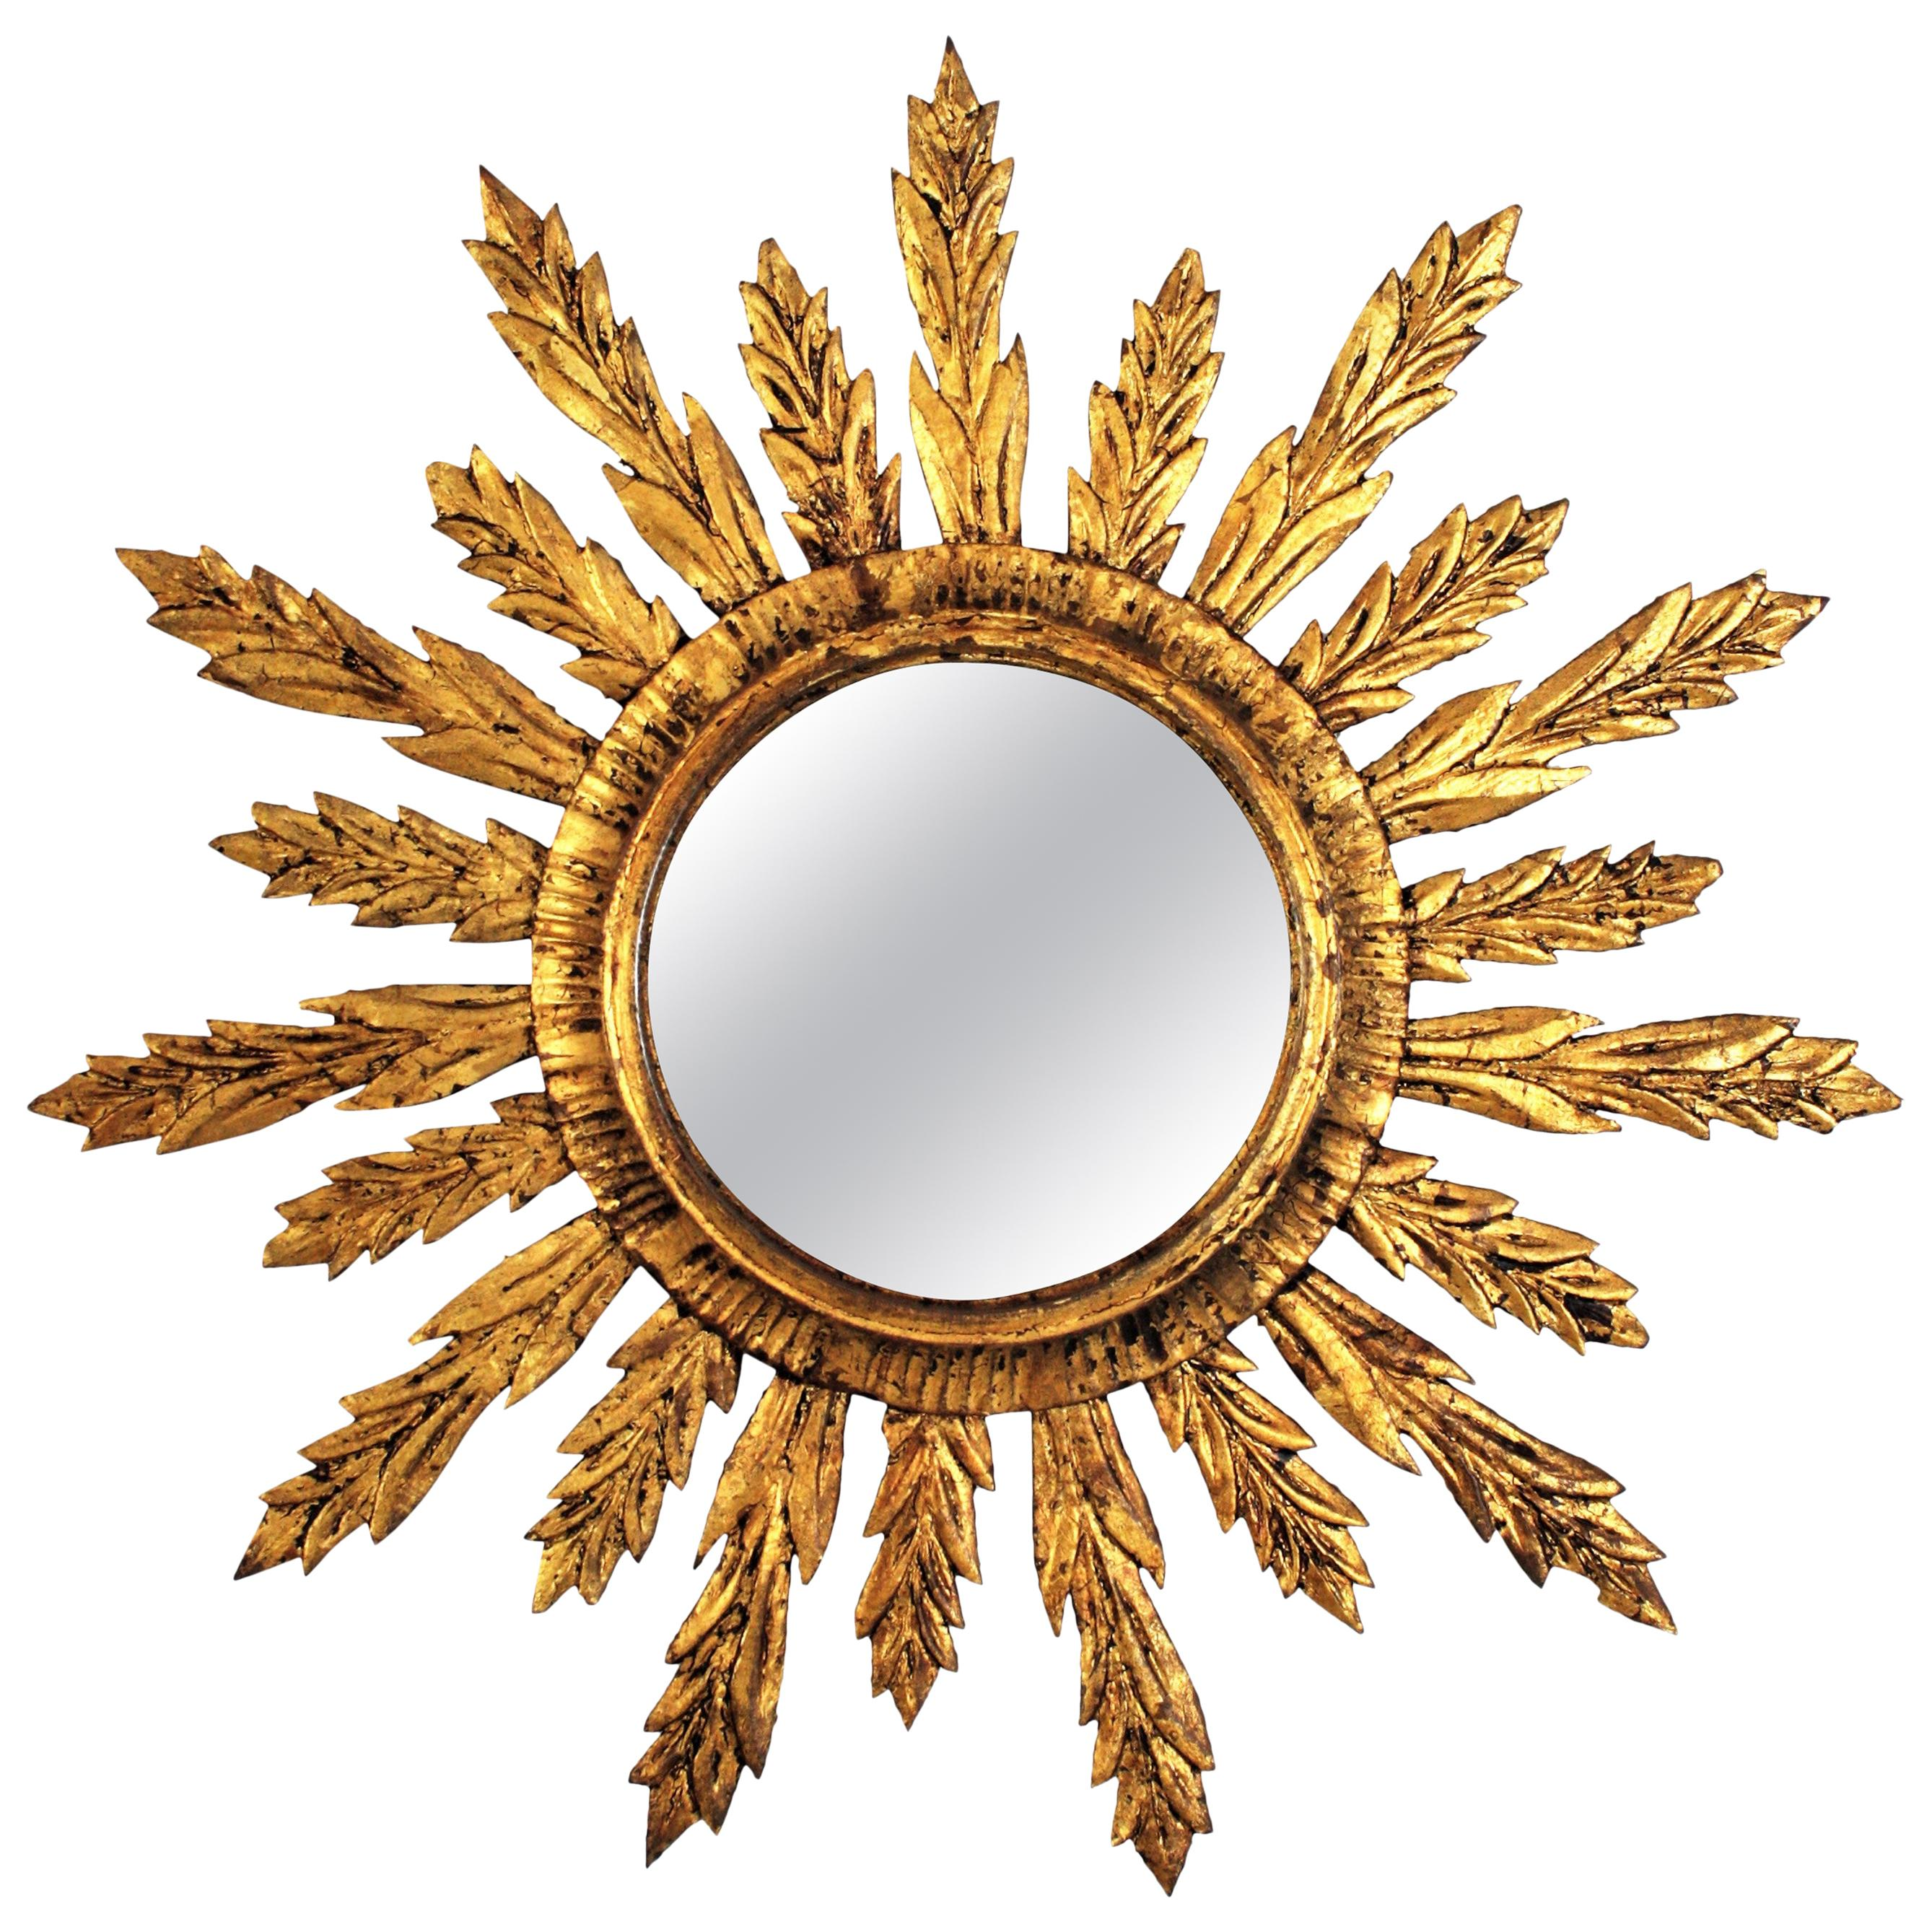 Sunburst Mirror with Leafed Frame in Carved Giltwood